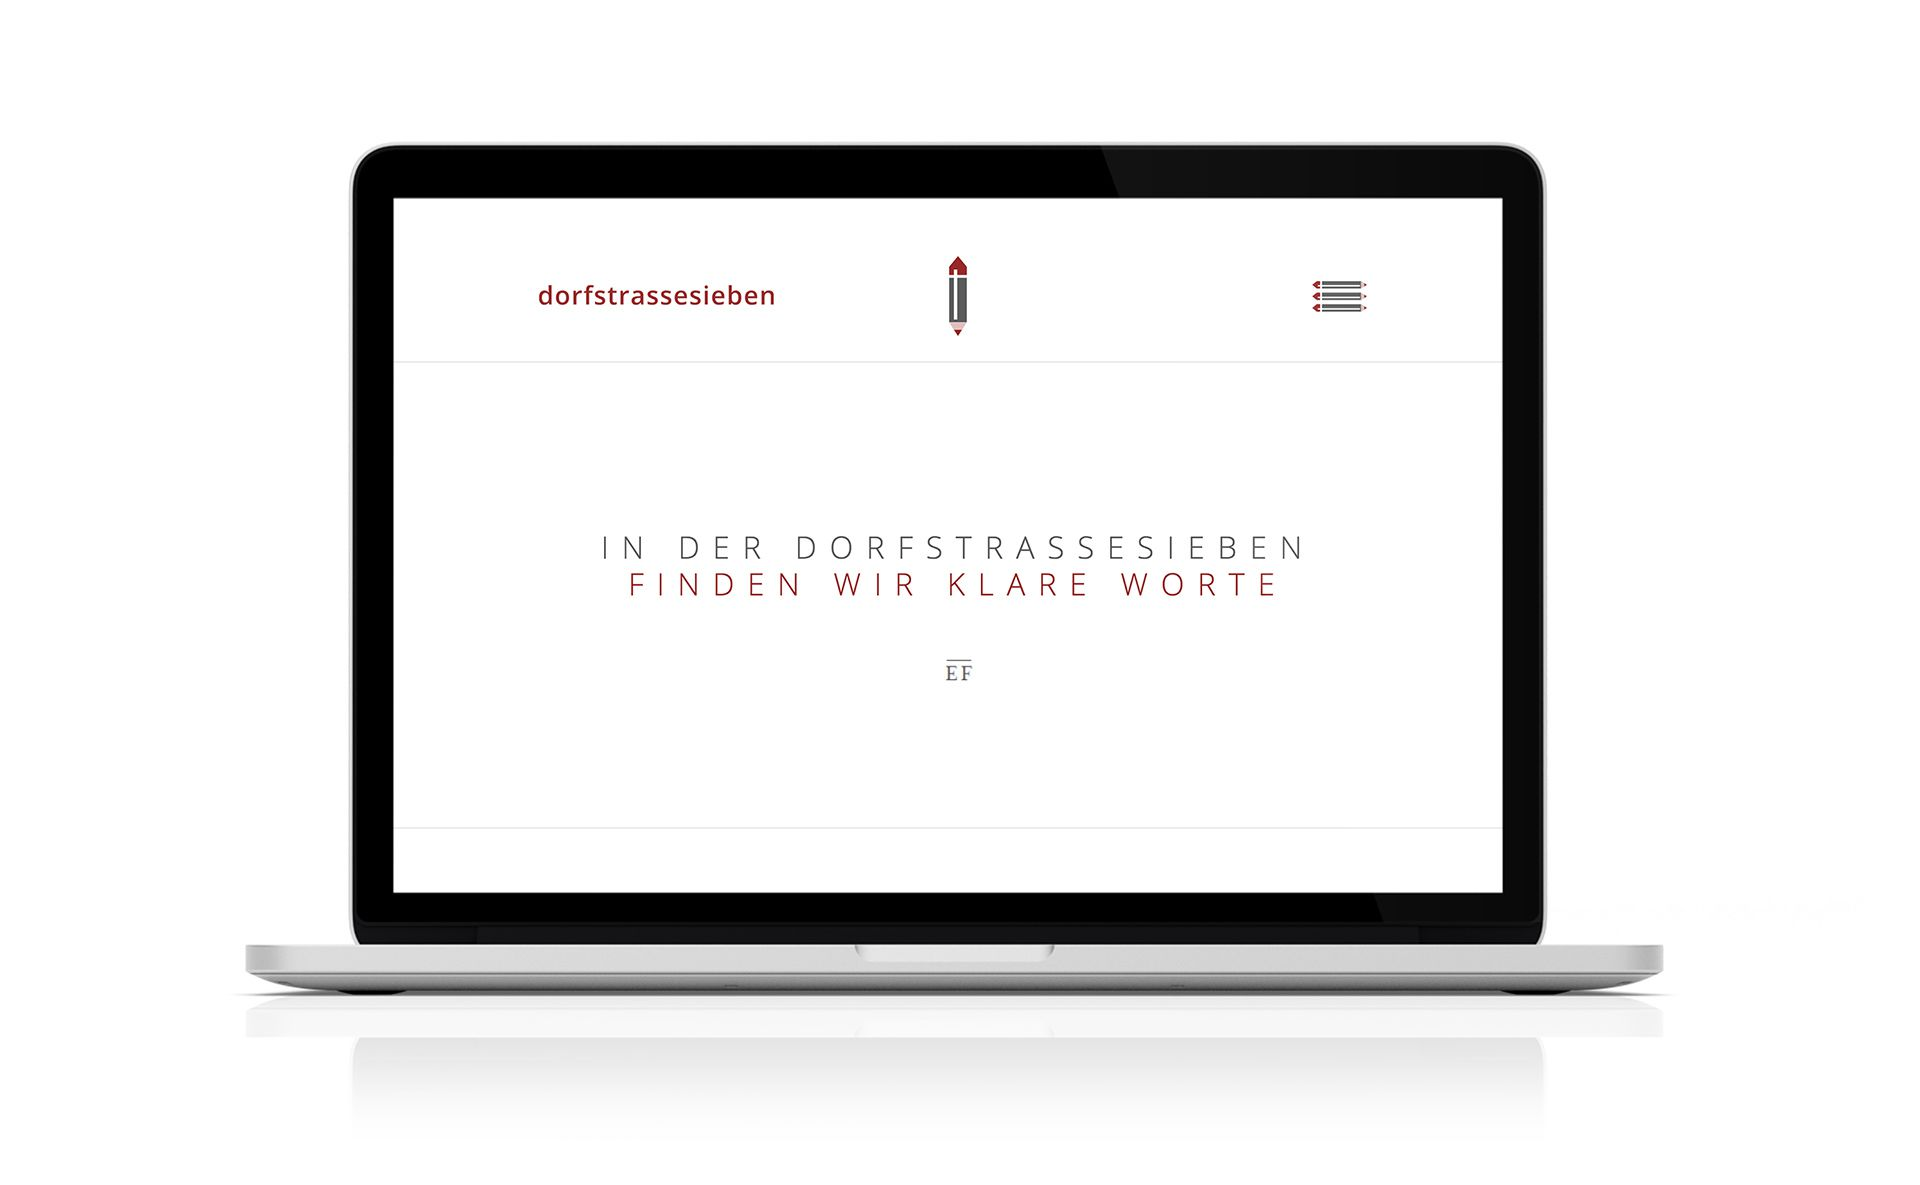 Corporate Design dorfstrassesieben